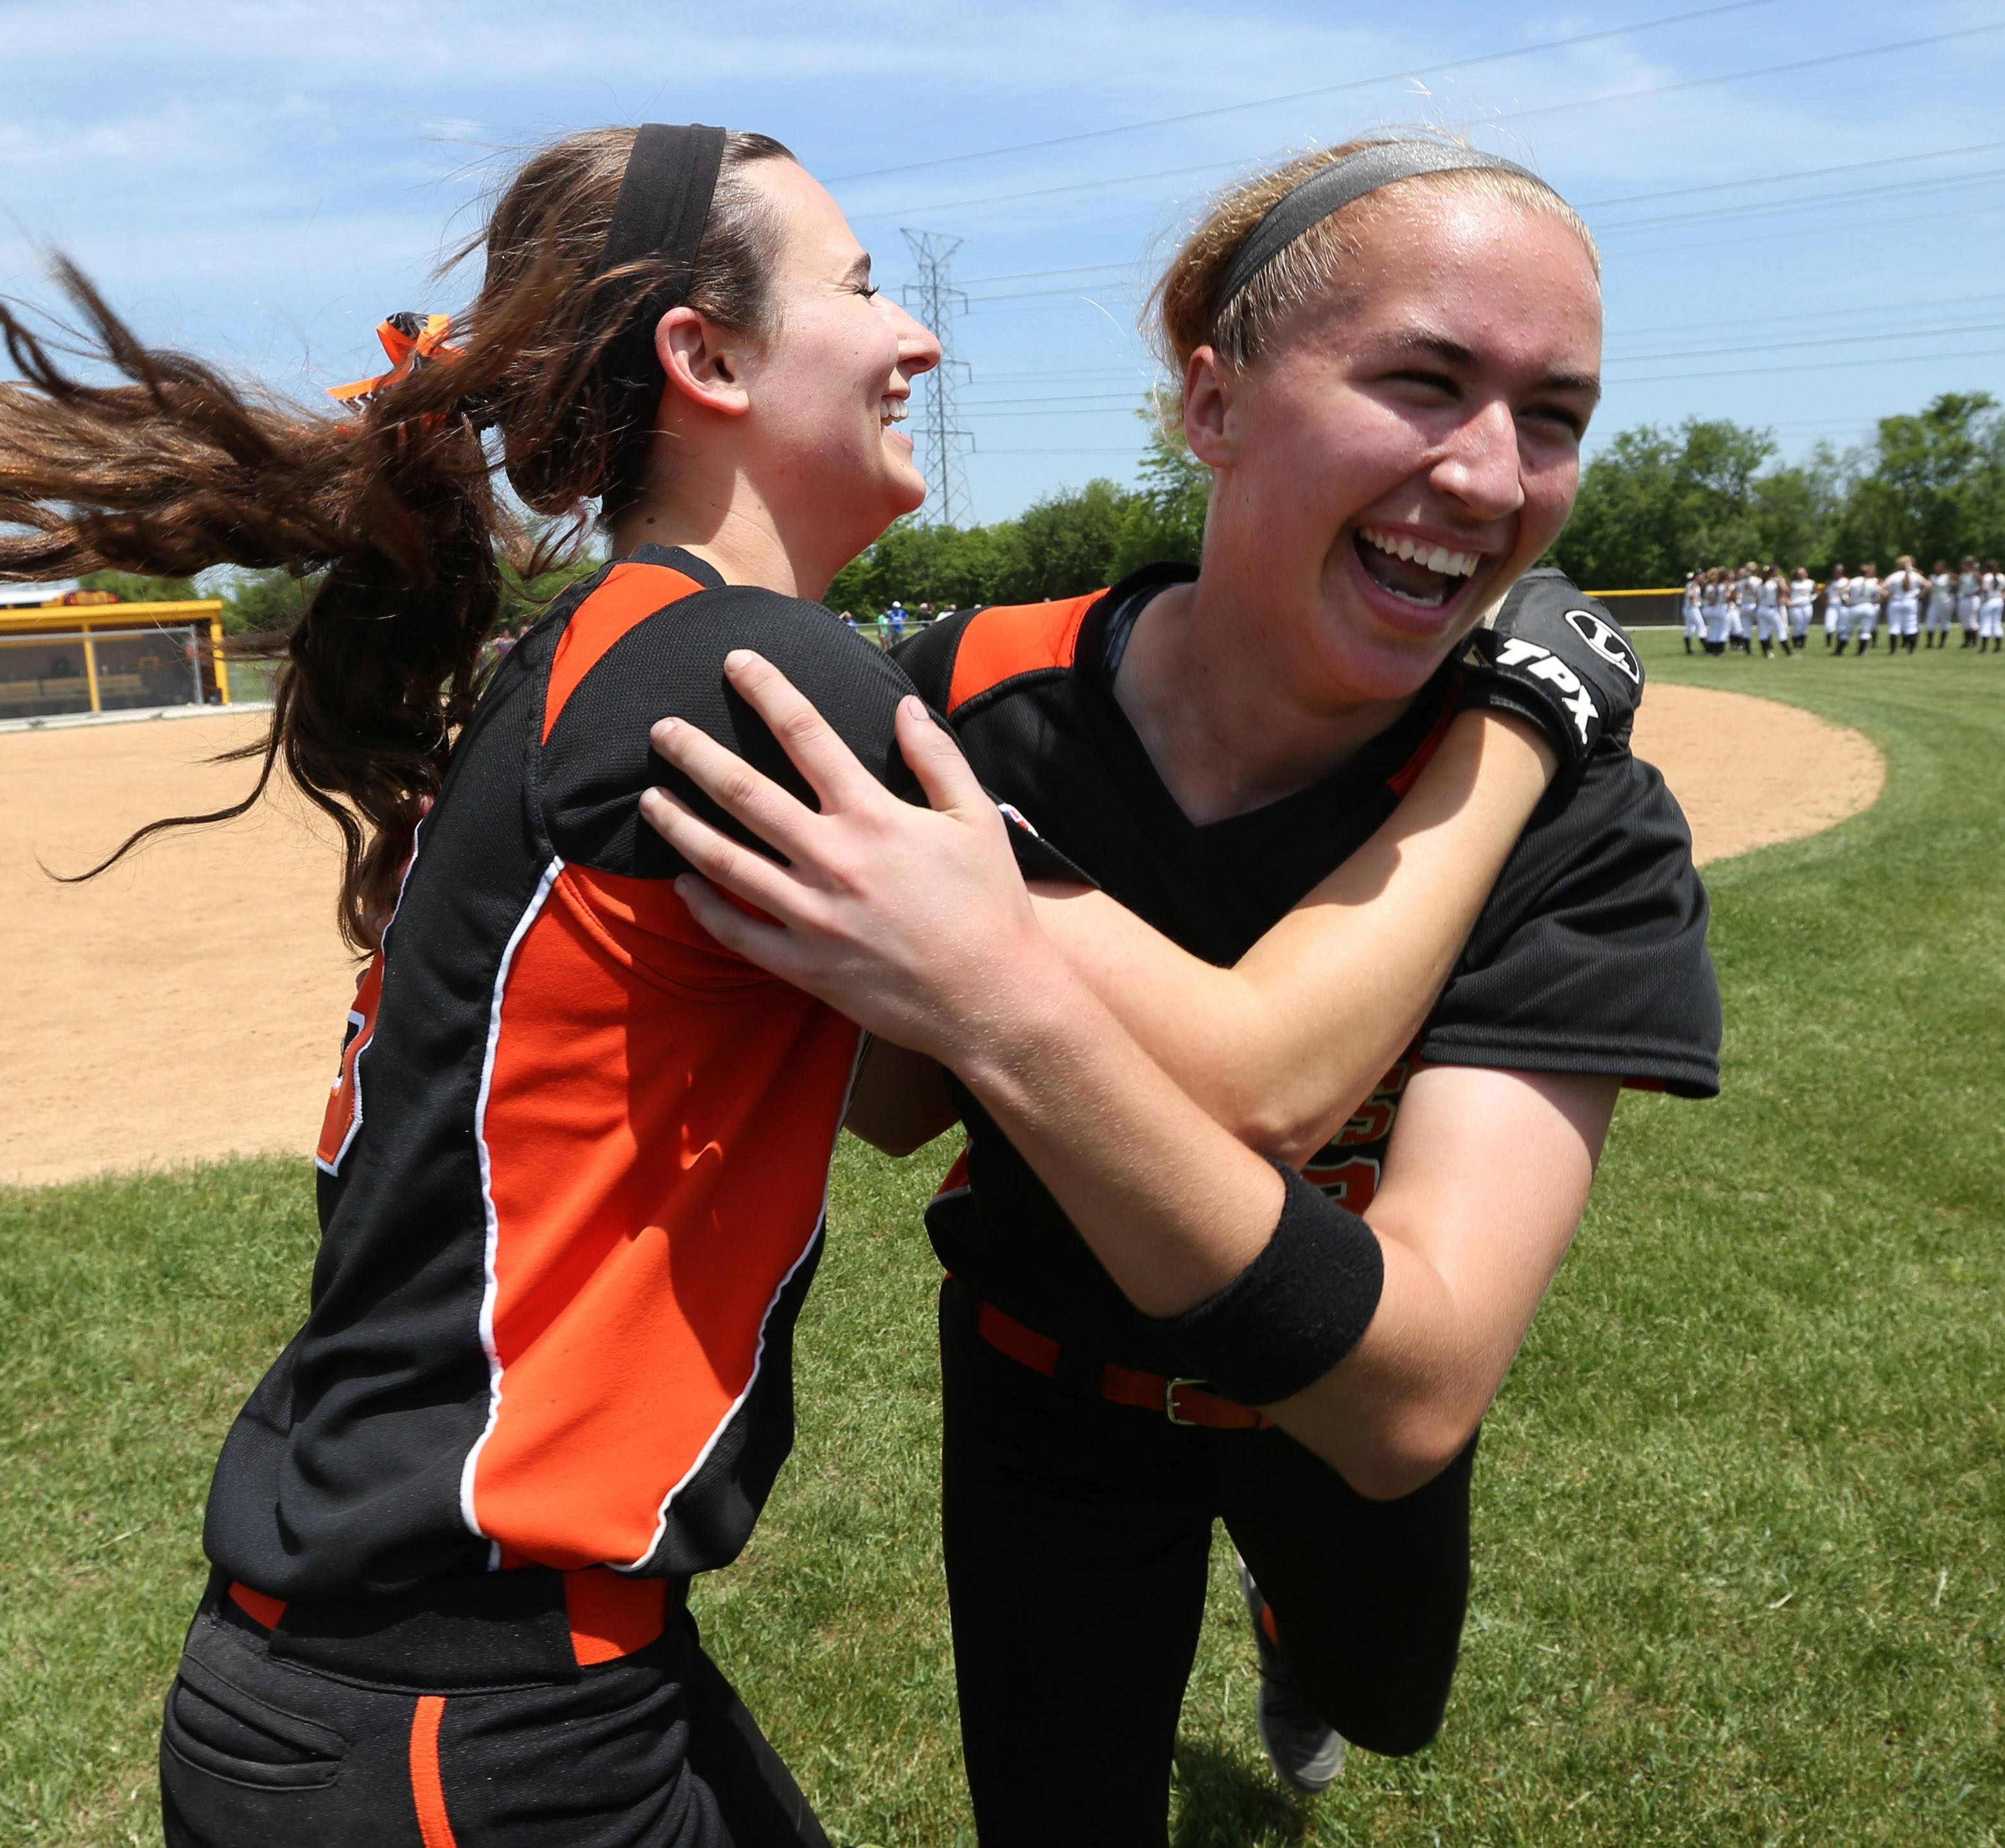 Libertyville's Tayler Oberman, right, gets a hug from teammate catcher Andi Katz after she hit a walk-off single to win the game against Carmel in a Class 4A Carmel softball regional final.